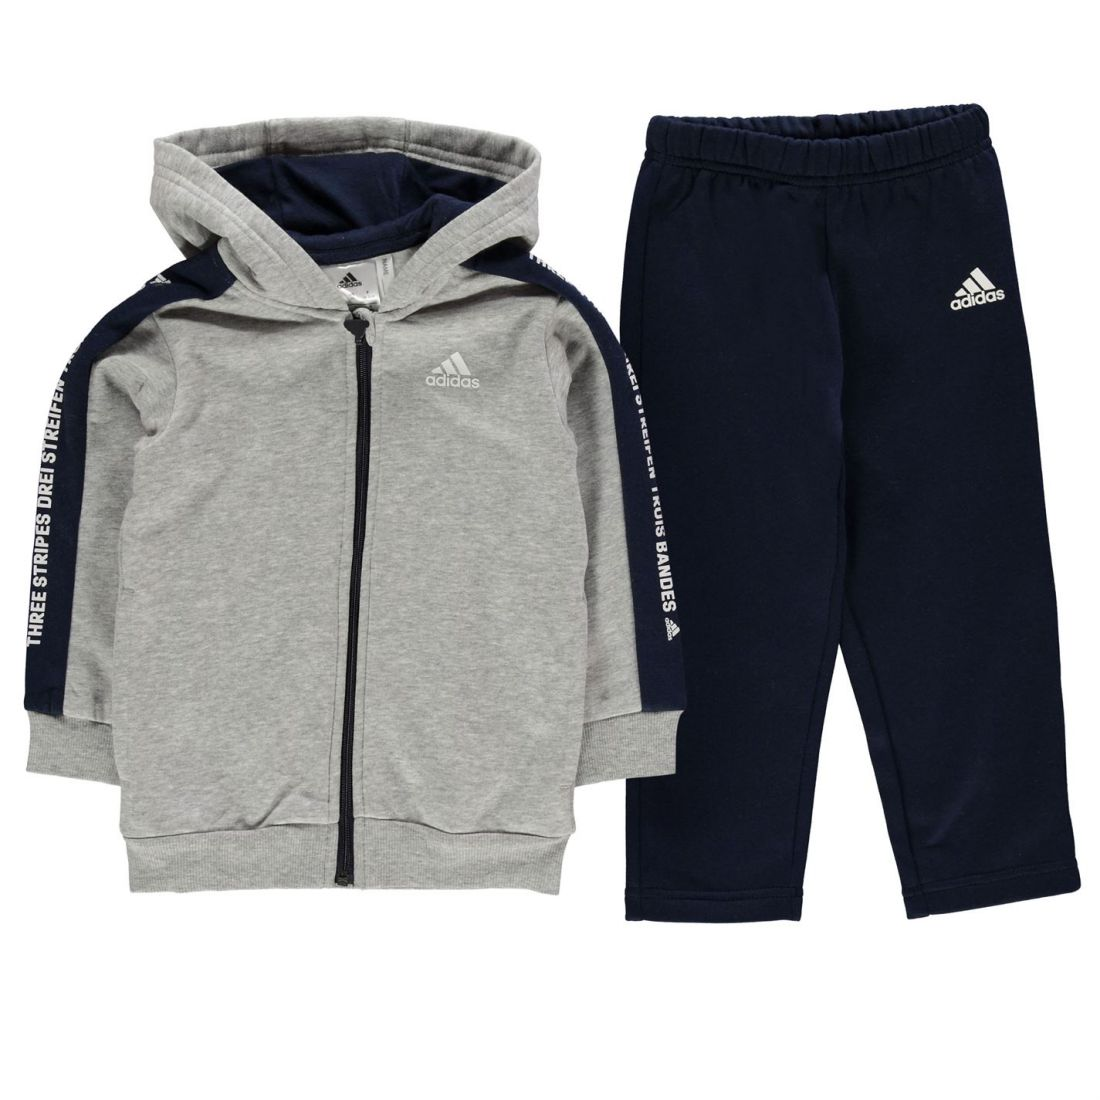 b569847b0 adidas Kids Boys Tape Full Zip Tracksuit Infant Fleece Hooded Stripe ...